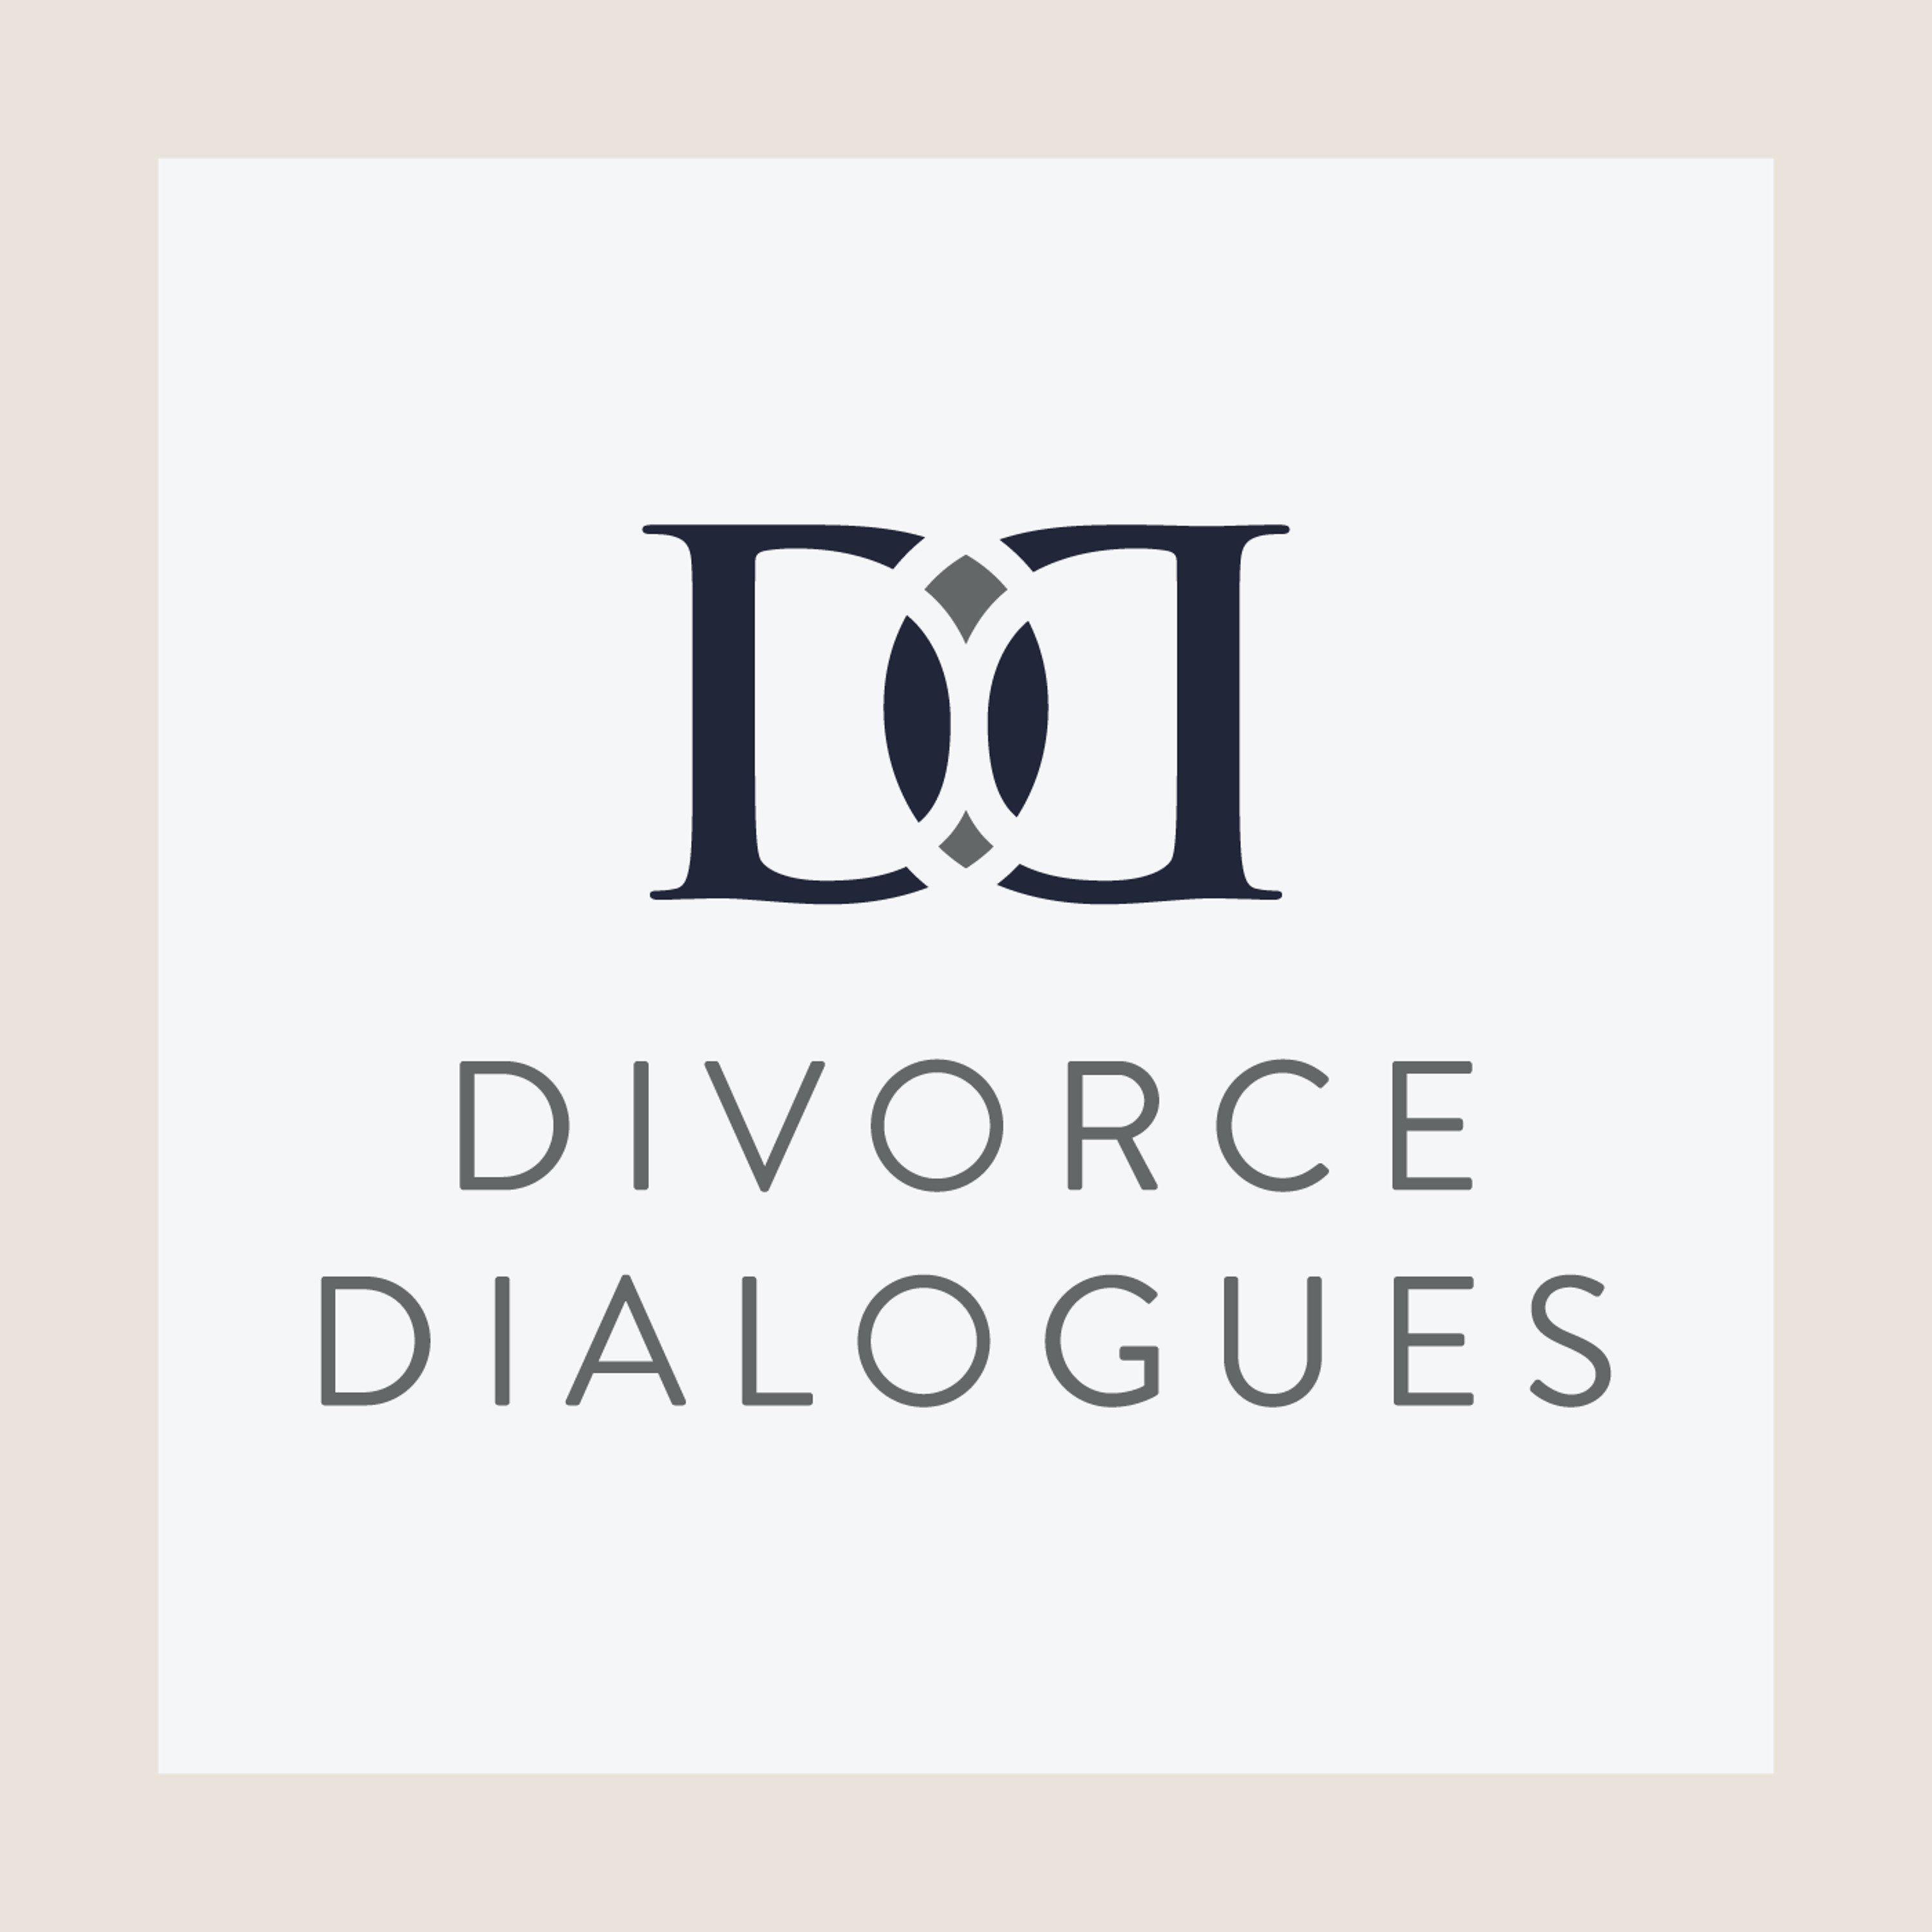 Divorce Dialogues - A Strengths-Based Approach to Parenting Through Divorce with Gloria DeGaetano